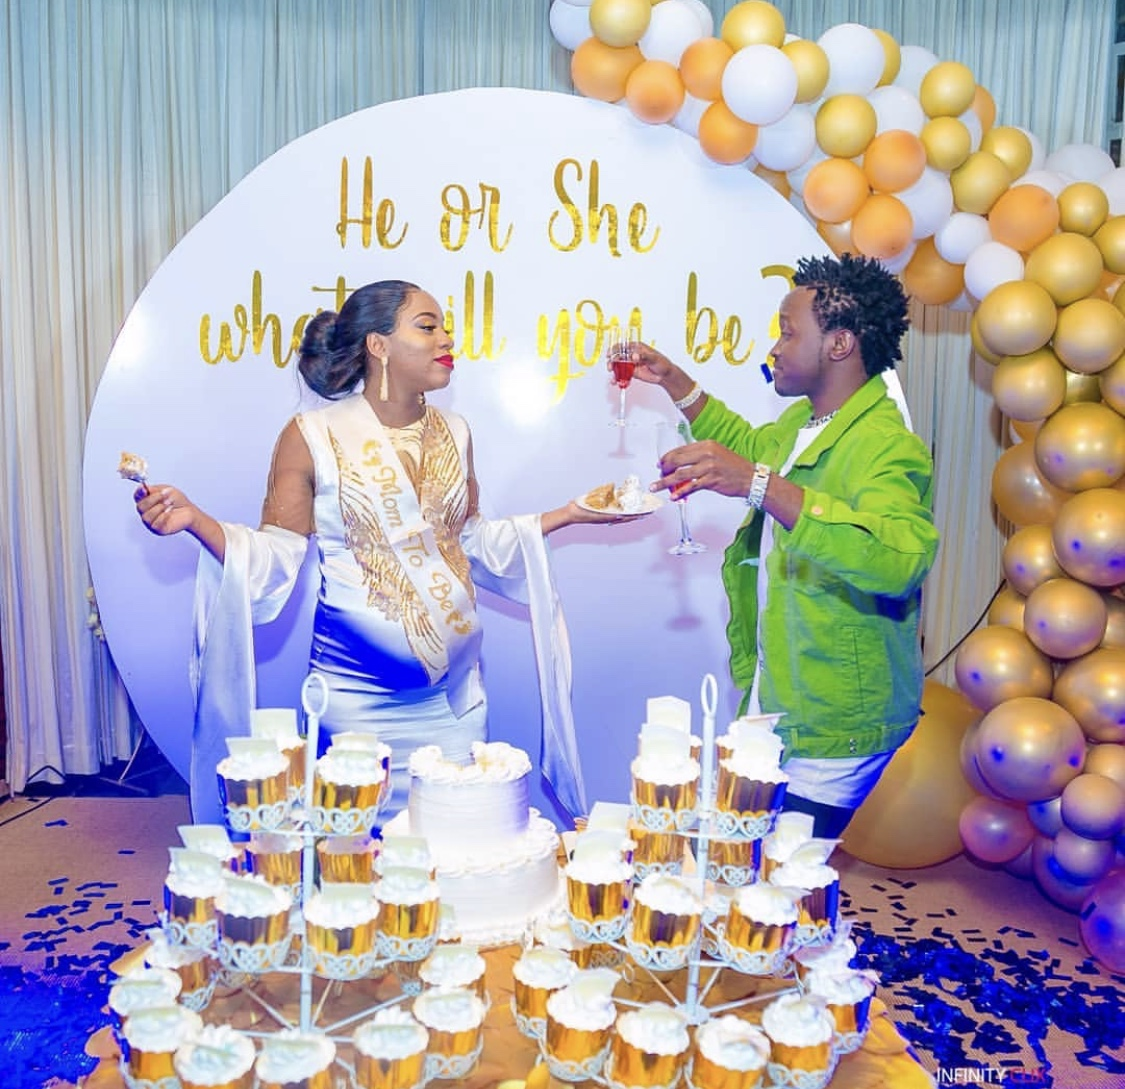 It's a baby boy! The Bahati's finally announce their unborn baby's gender